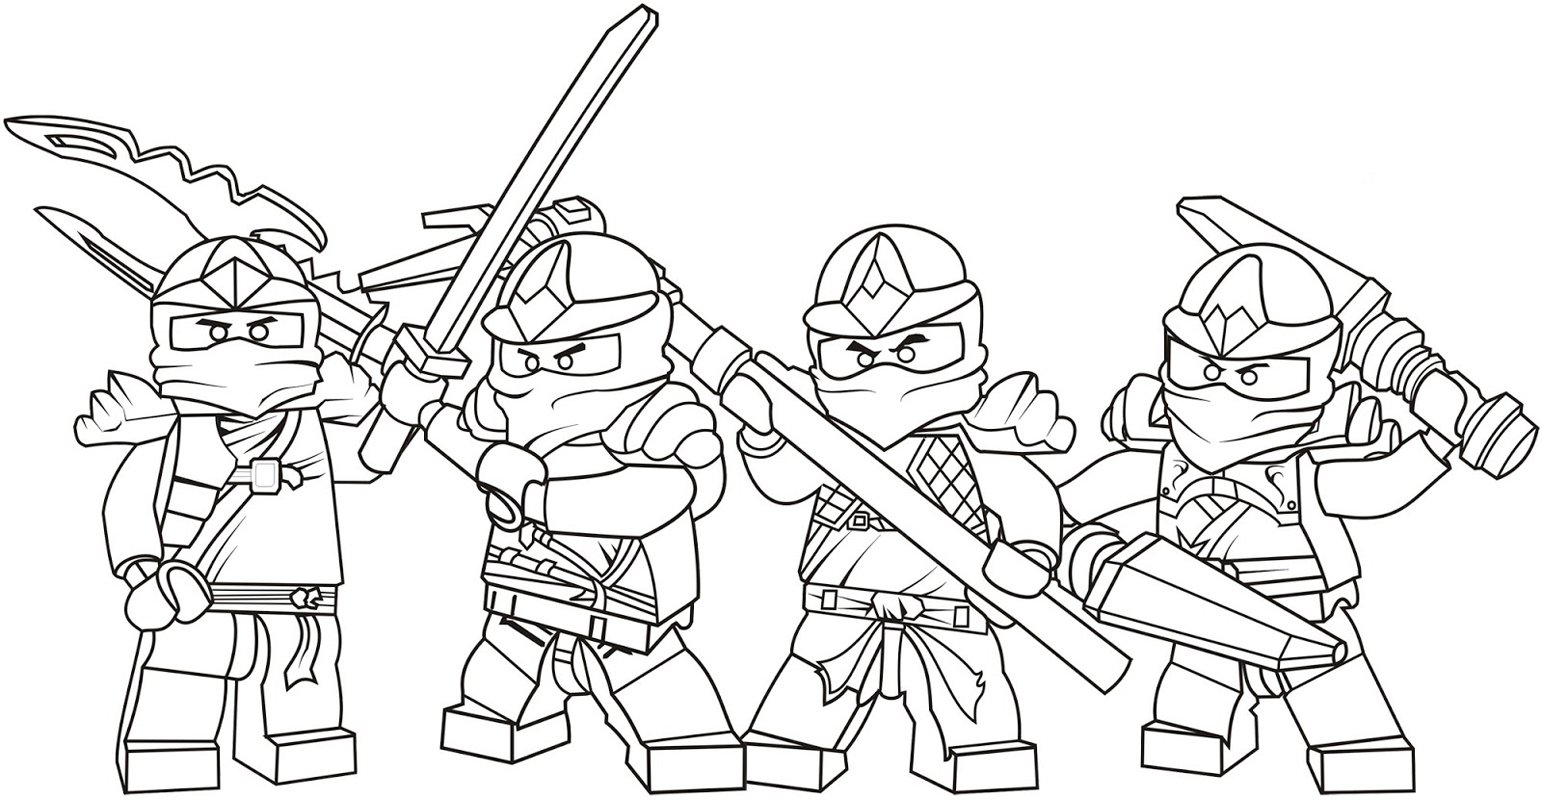 Good Lego Chima Coloring Pages 79 For Your Line Drawings With Lego